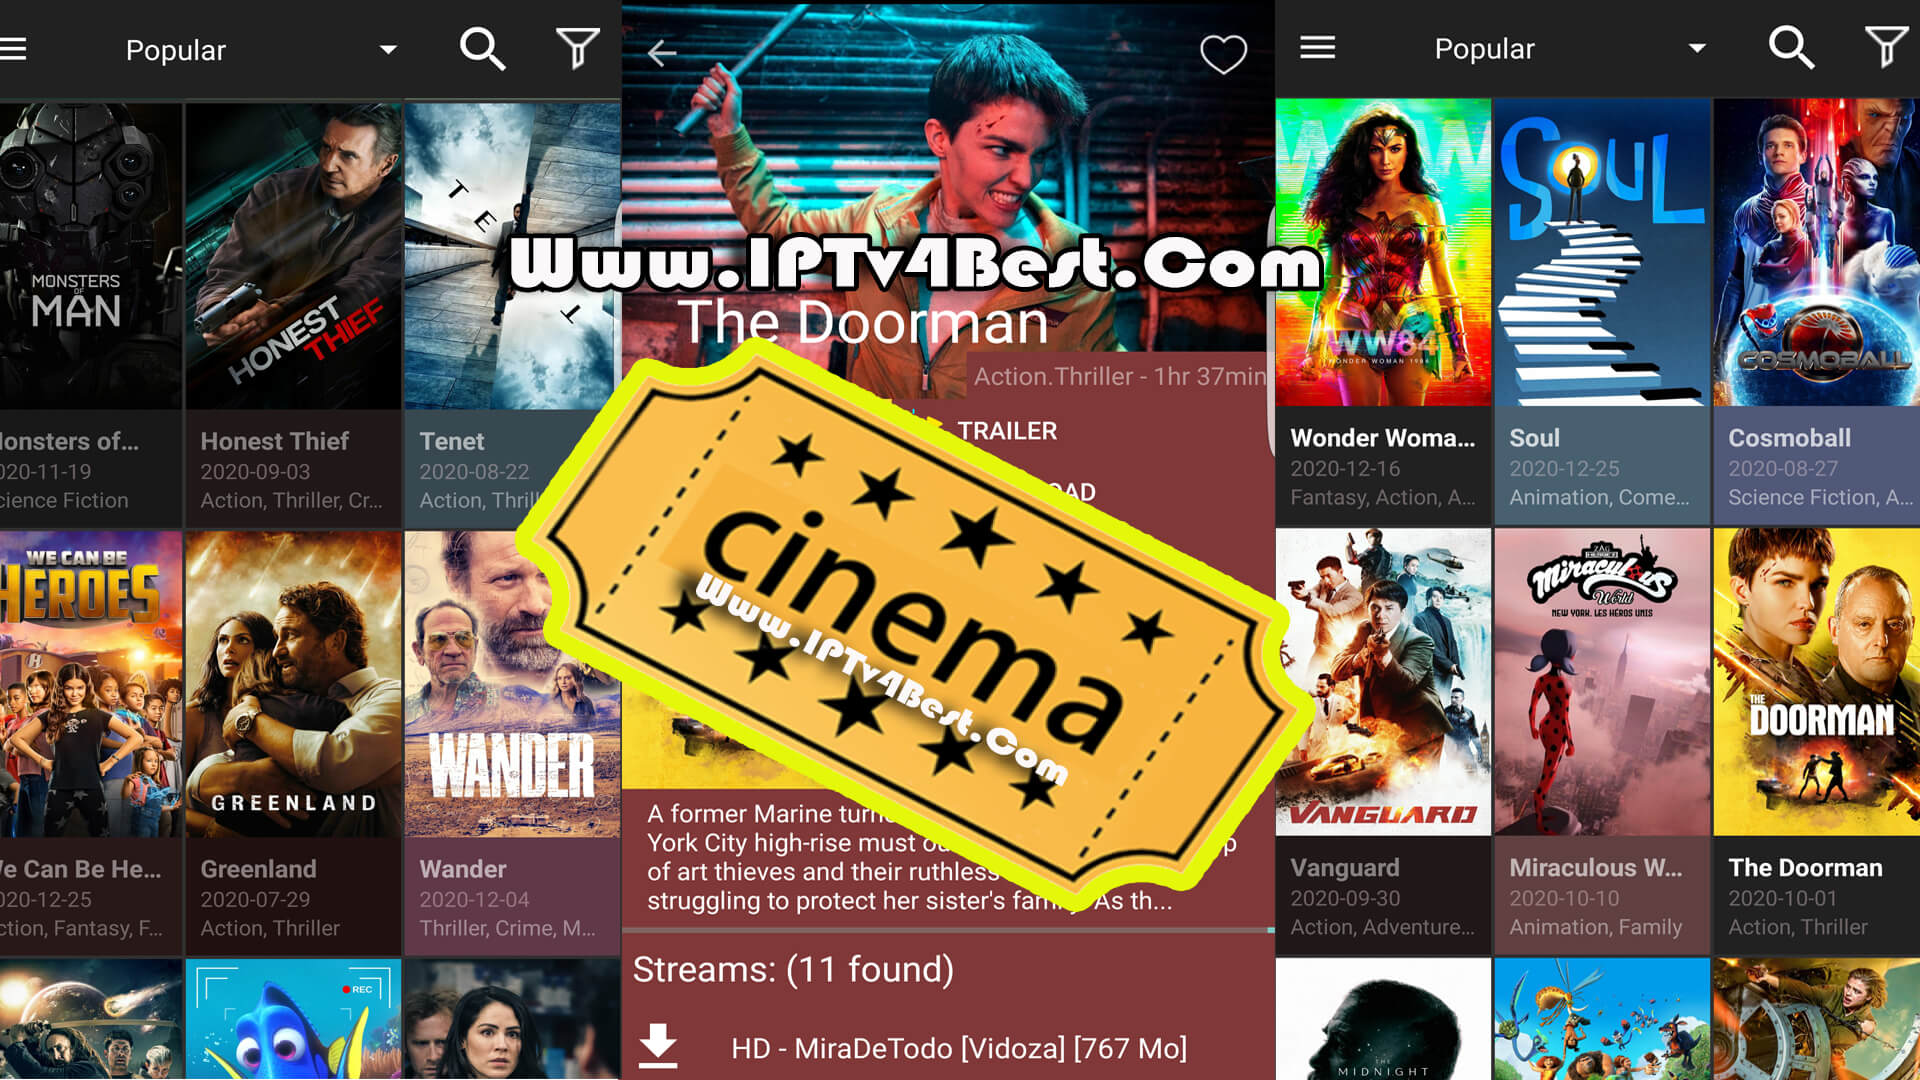 Cinema HD V2 APK Watch Movies & Series 2021 By IPTV4BEST.COM